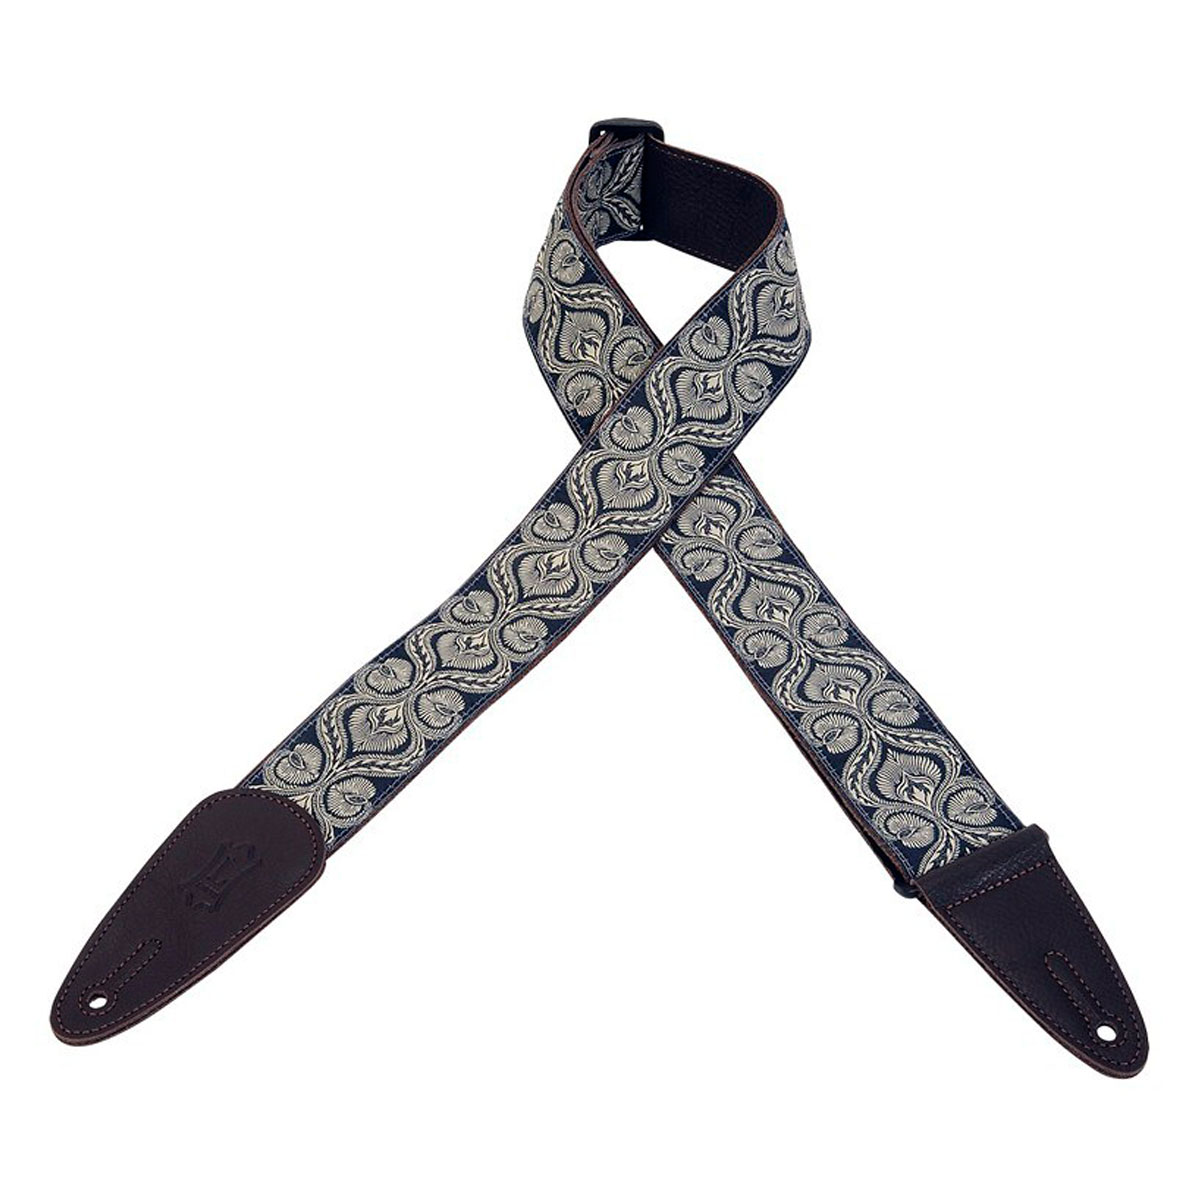 Levy's レビース / WOVEN Guitar Strap MGJ-001 ギターストラップ【お取り寄せ商品】